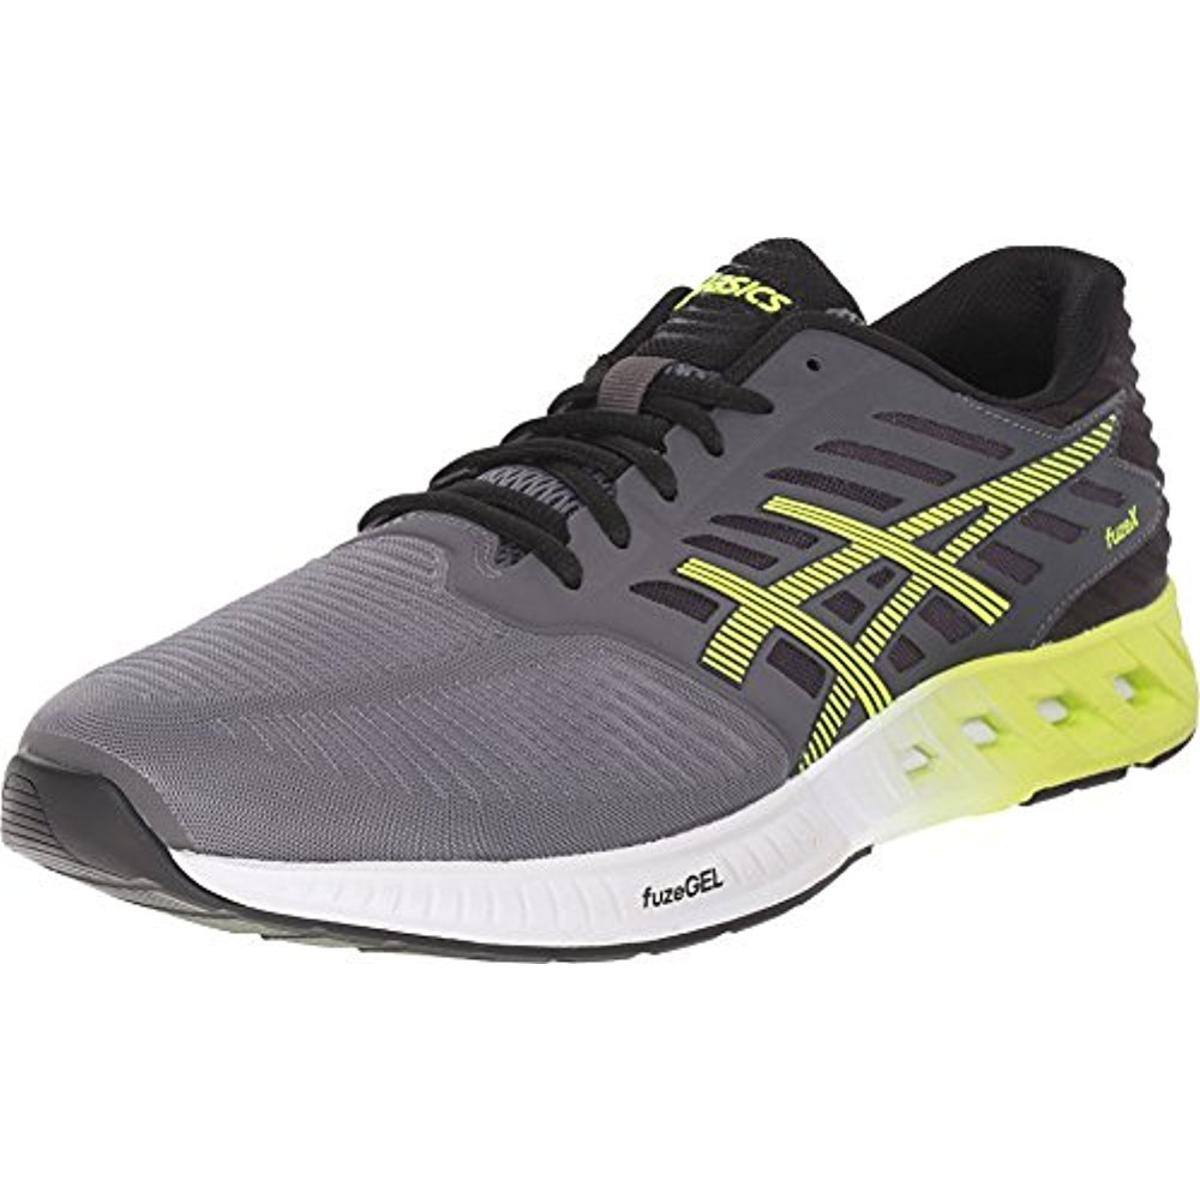 Asics 5895 Mens Fuze x Mesh Colorblock Athletic Running